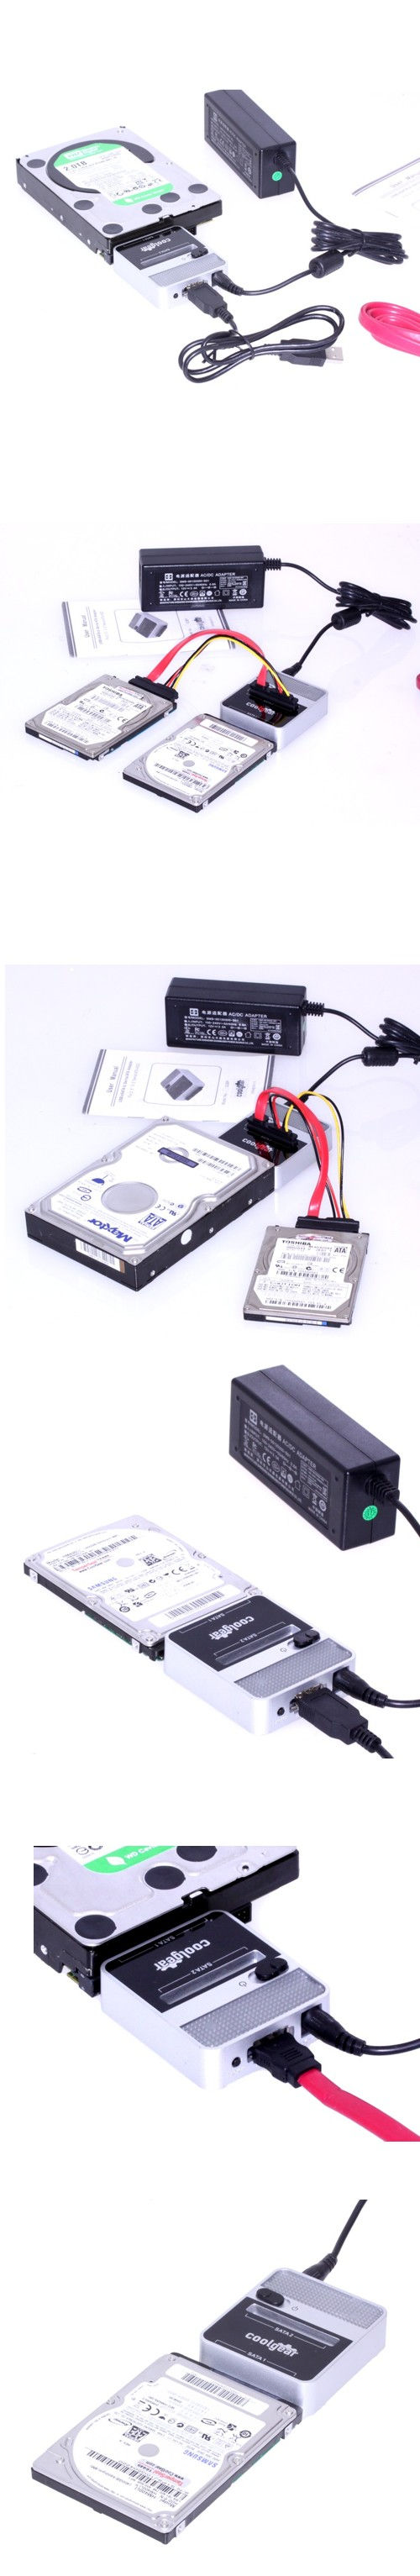 SATA Drive Cloning Hardware Solution, Simple and Fast SATA to SATA HDD/SSD Sector Copy Device - Image B